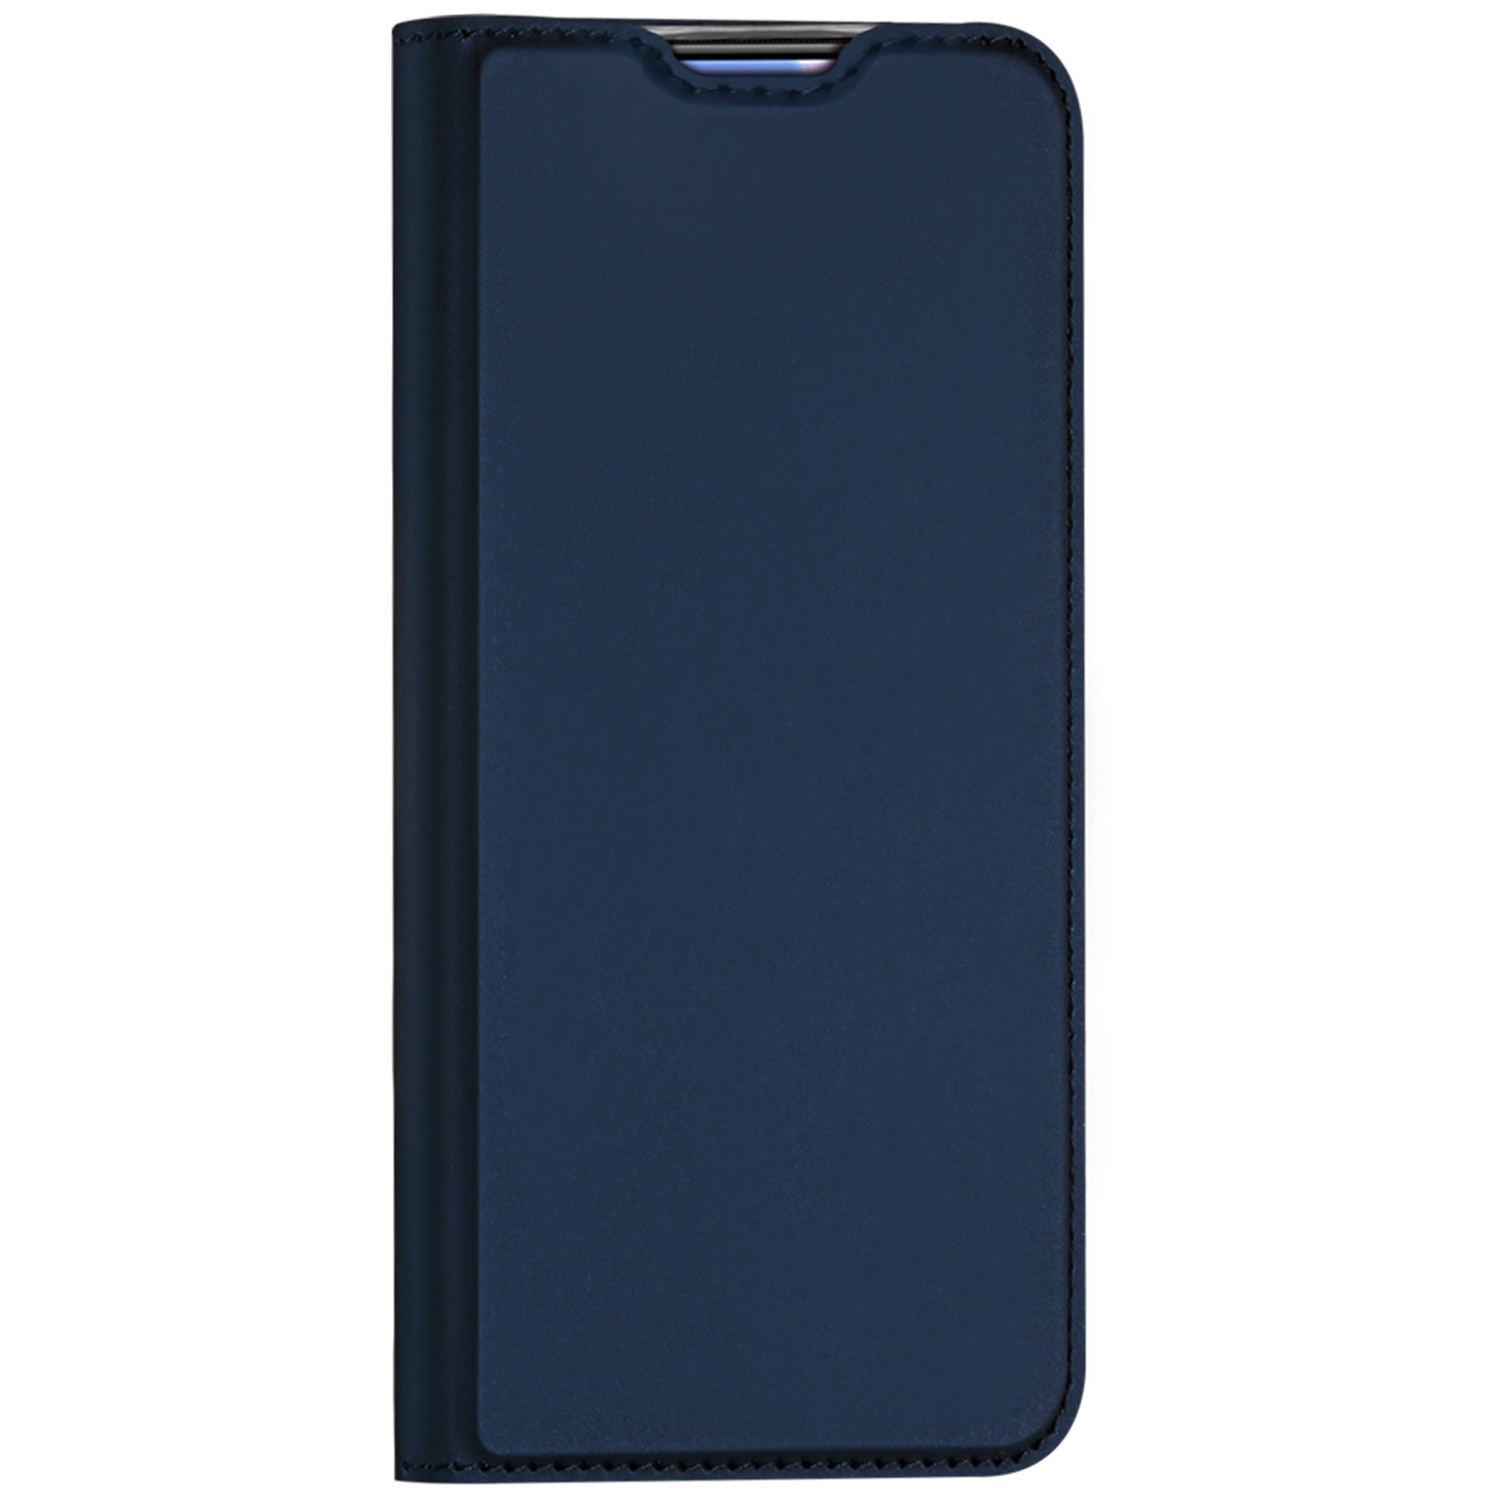 Dux Ducis Slim Softcase Booktype Oppo Find X2 Lite - Donkerblauw